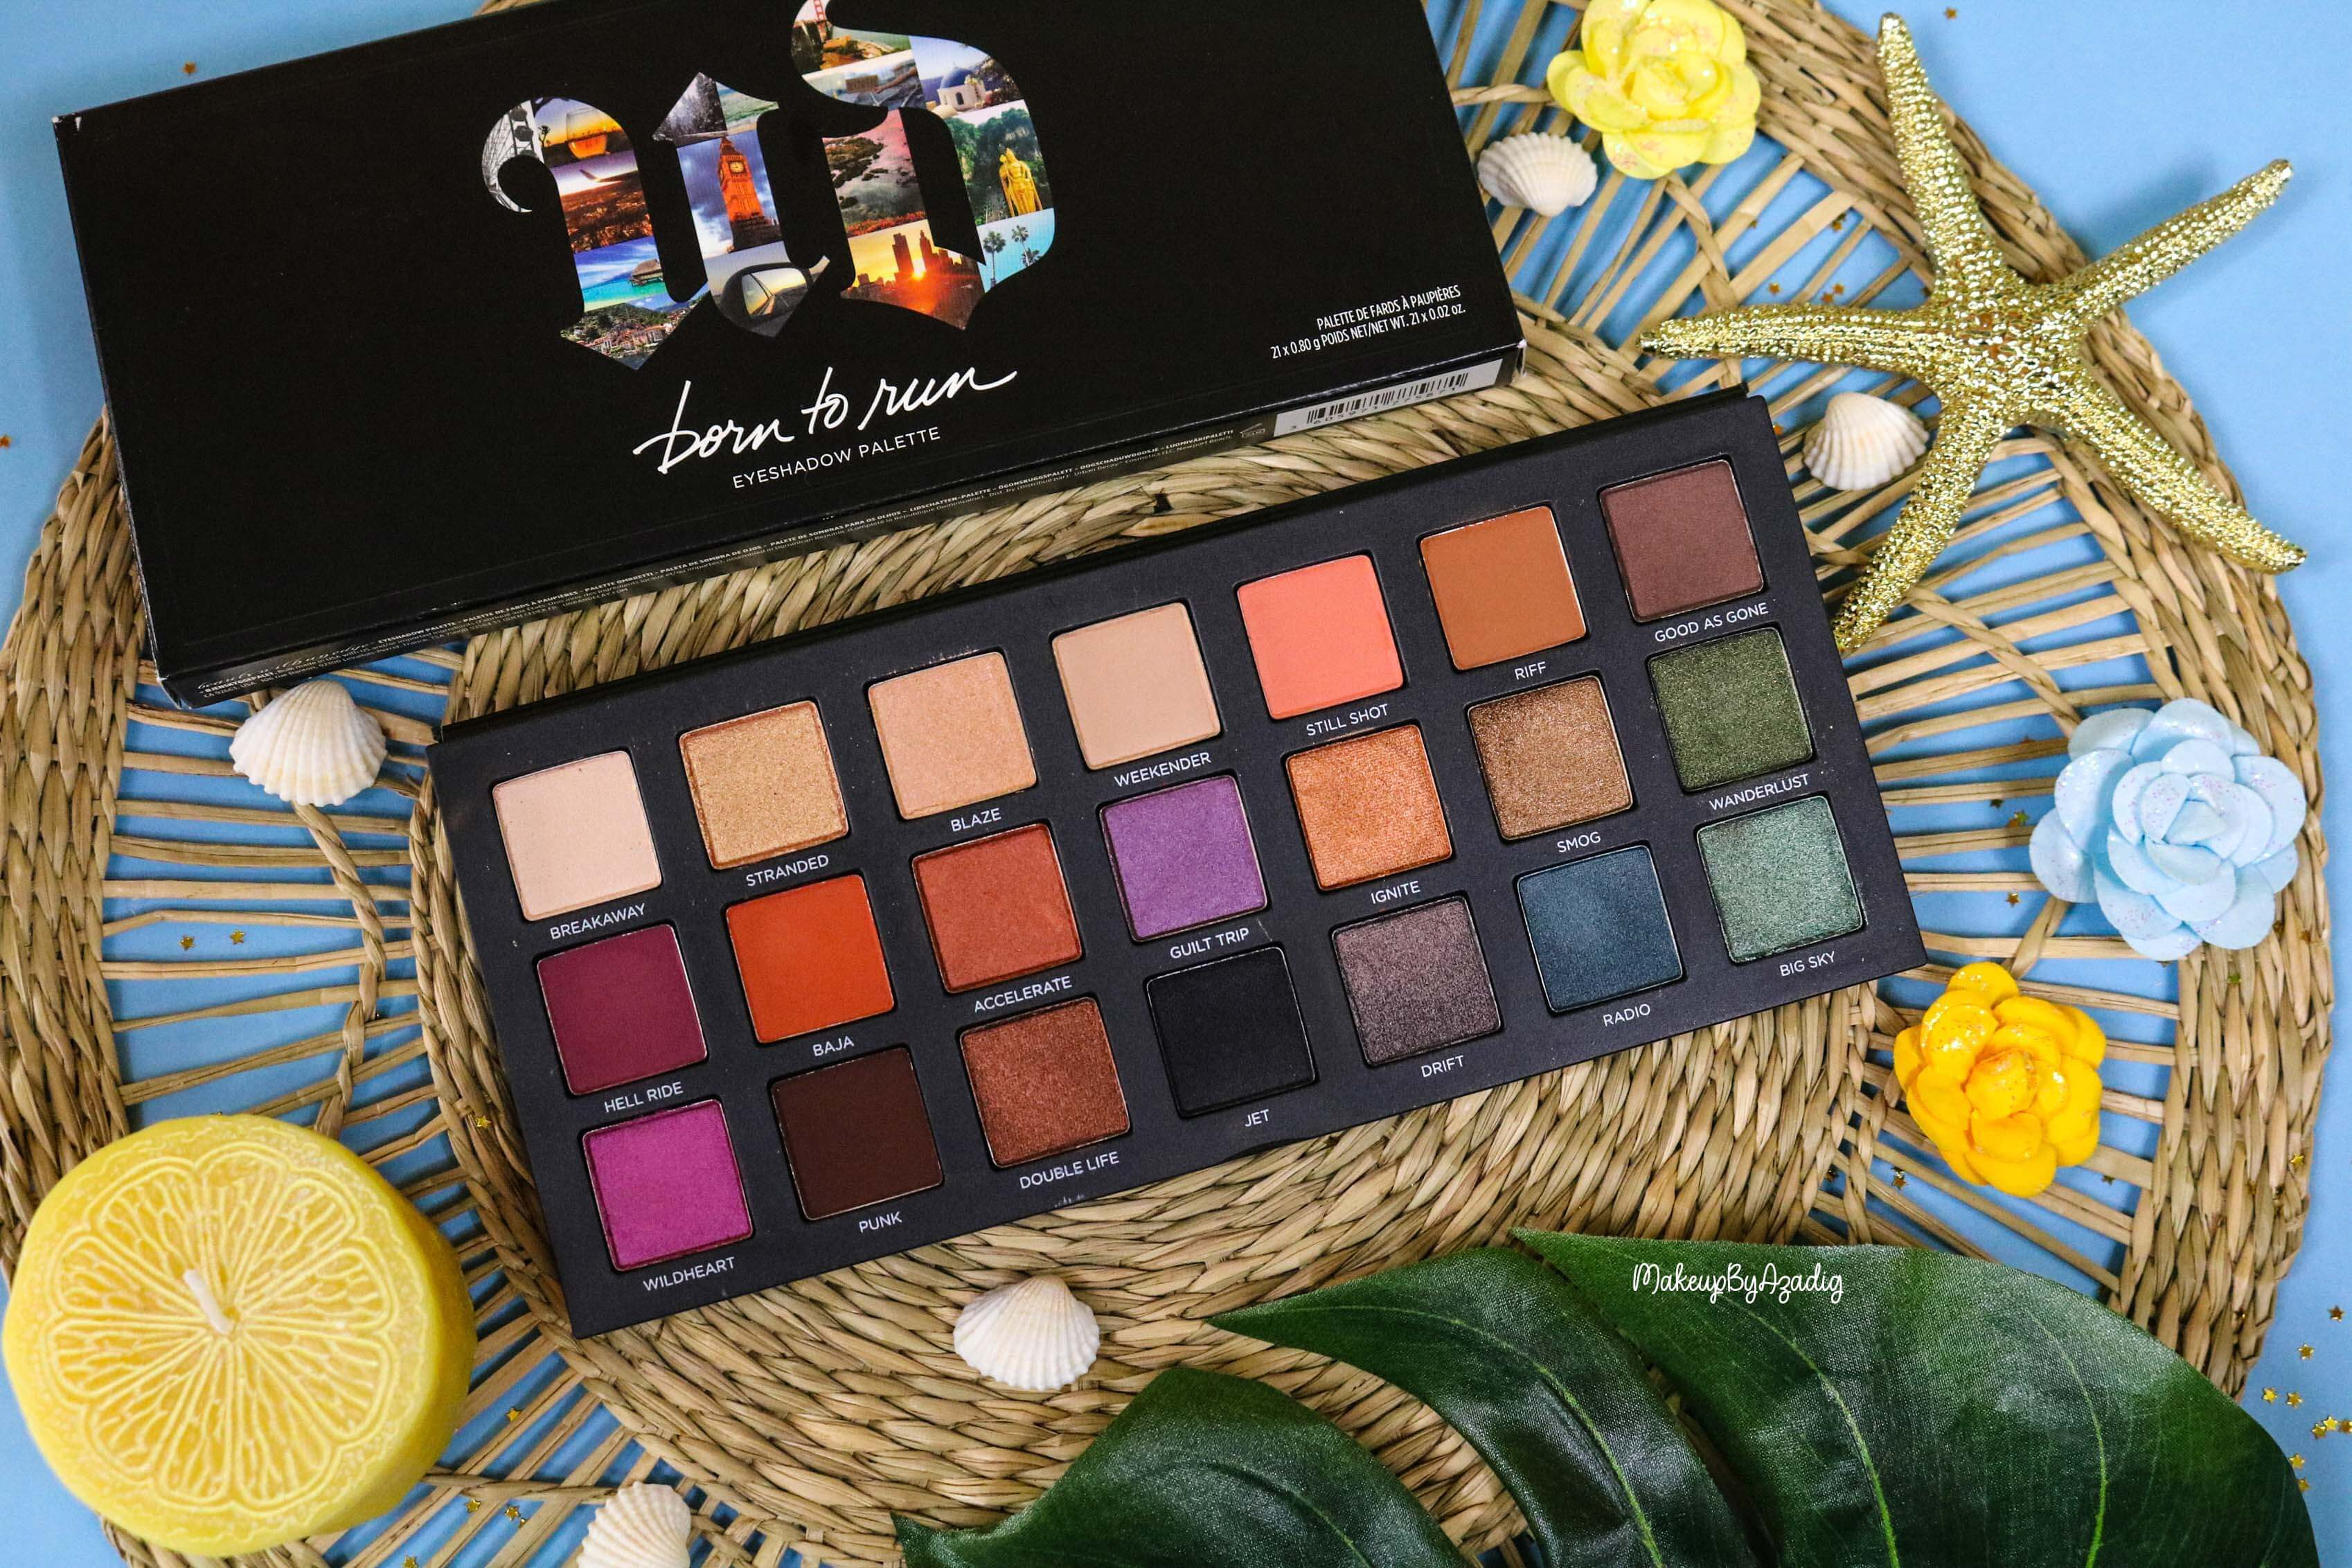 revue-nouvelle-palette-de-fards-paupieres-born-to-run-urban-decay-sephora-prix-avis-makeupbyazadig-travel